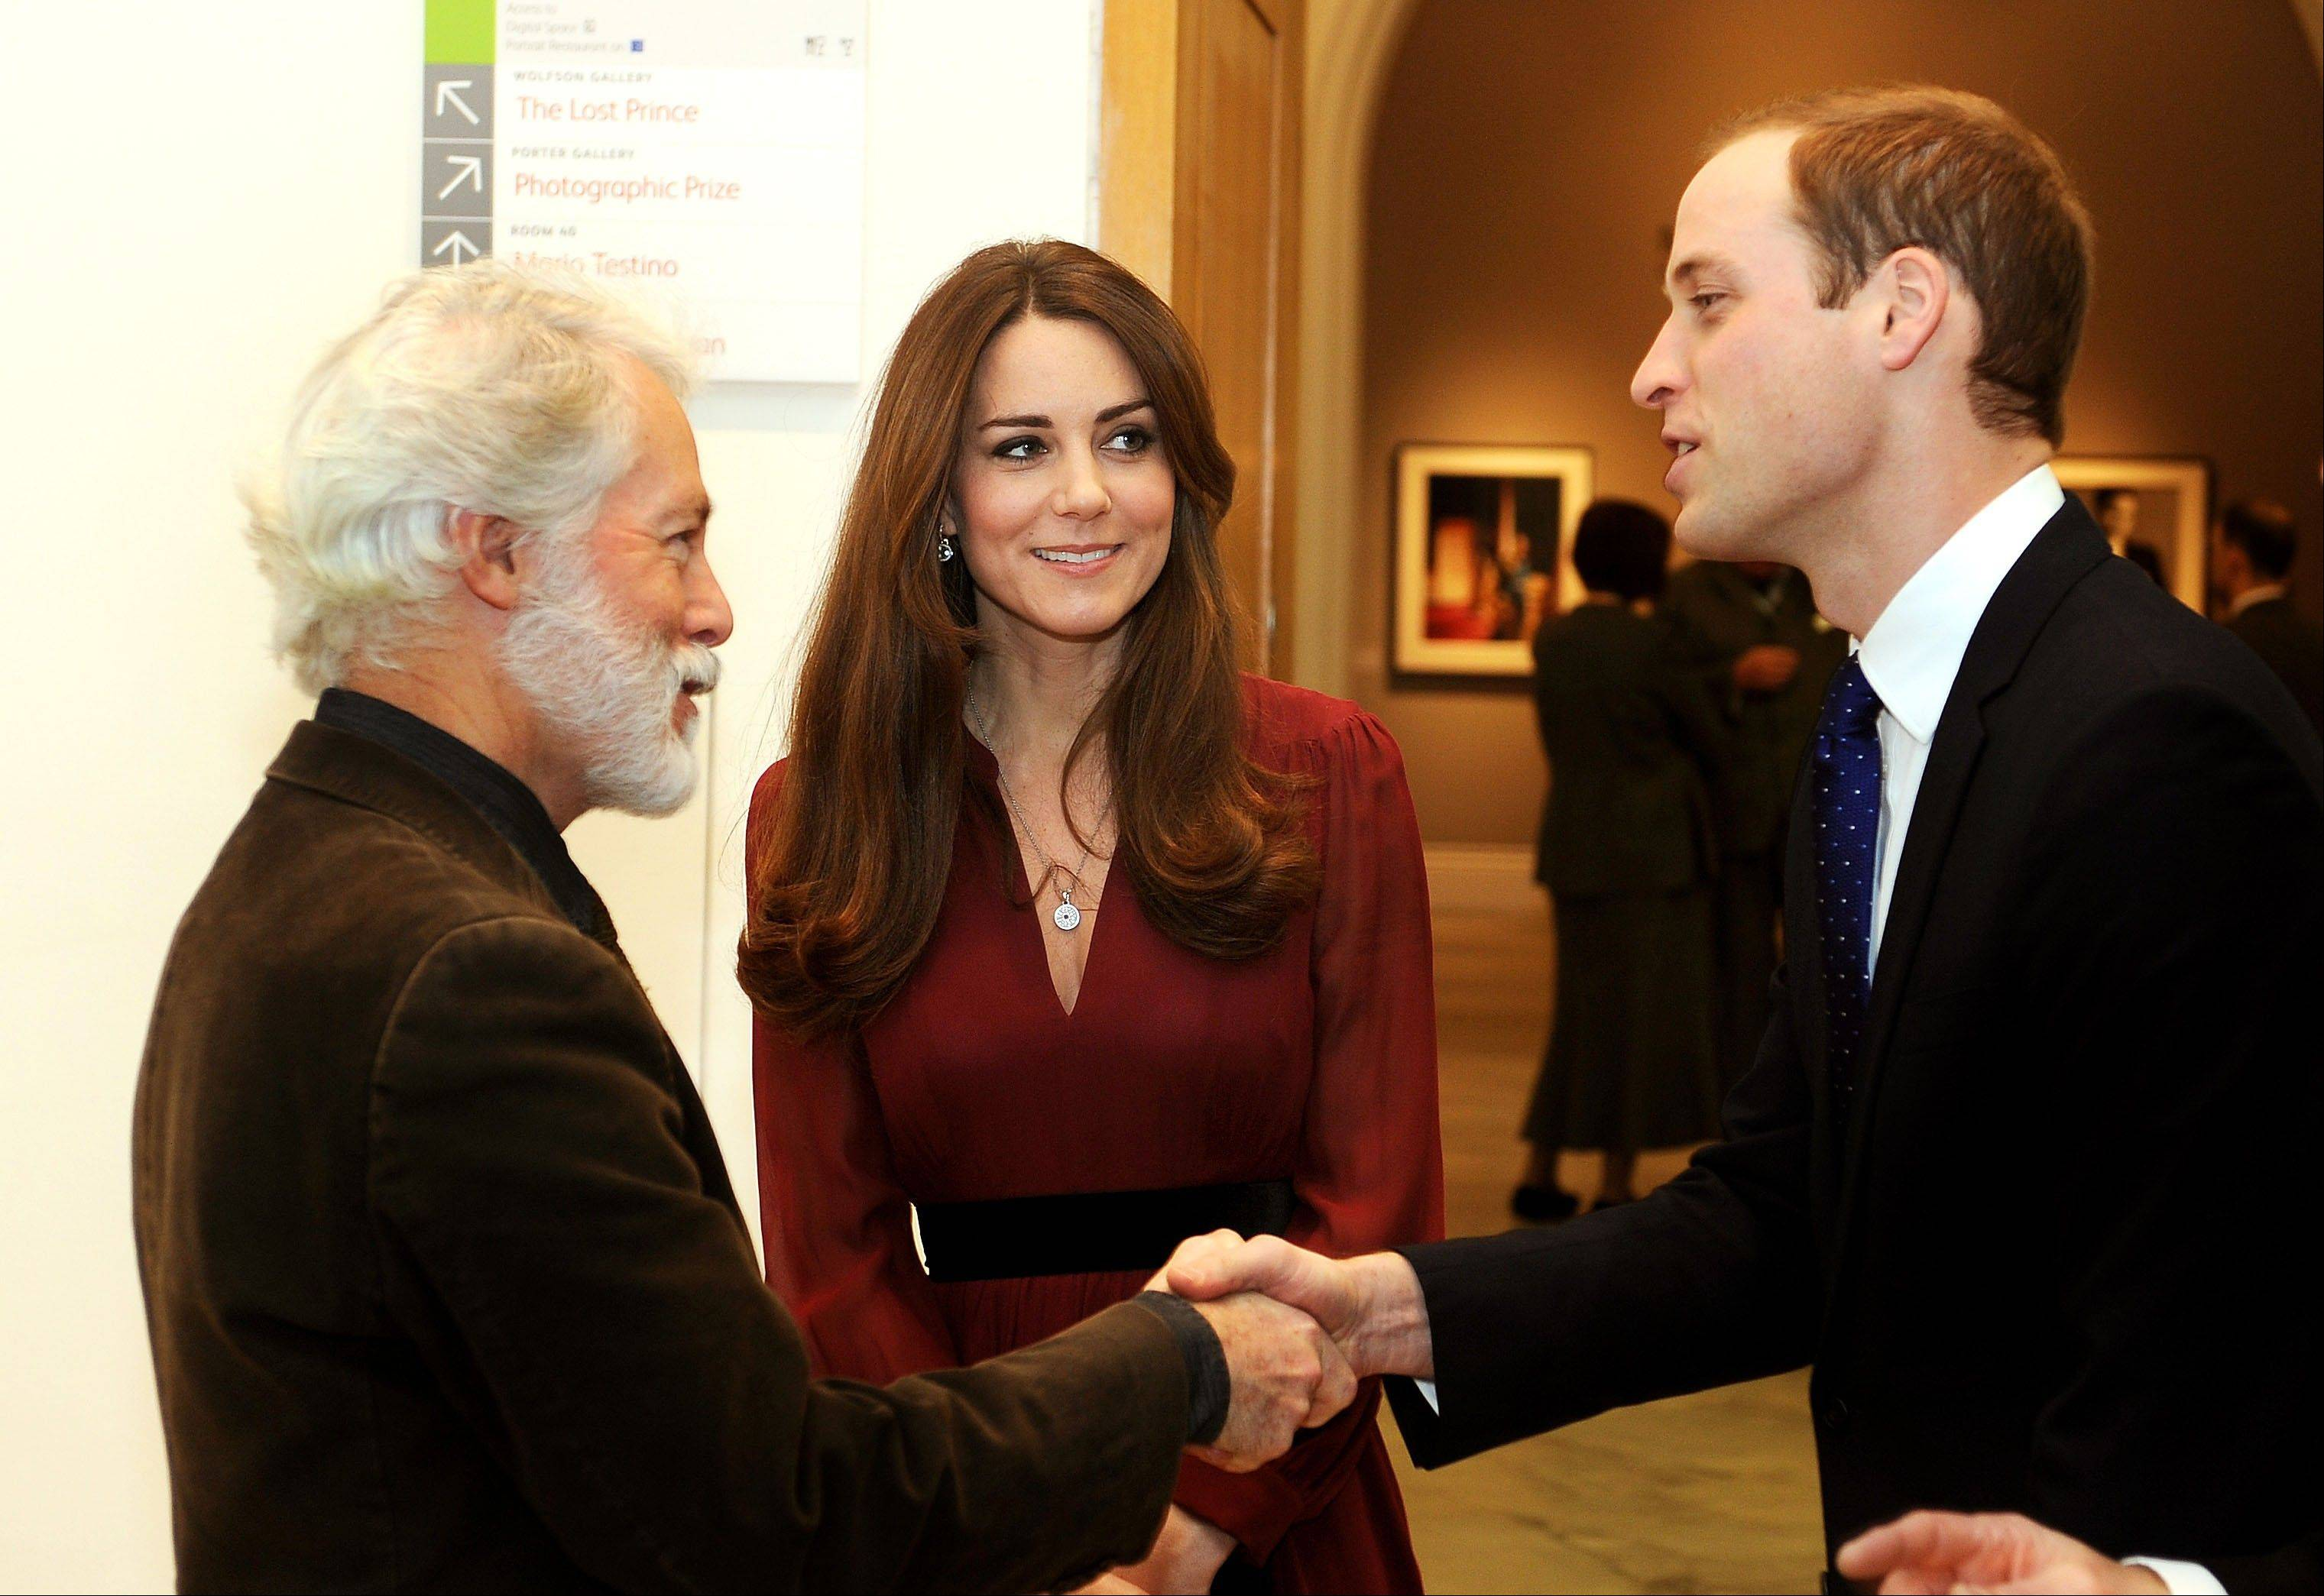 The Duke and Duchess of Cambridge meet artist Paul Emsley after viewing the newly commissioned portrait of The Duchess of Cambridge at the National Portrait Gallery in central London on Friday. Kate has resumed public appearances after being treated for acute morning sickness last month.